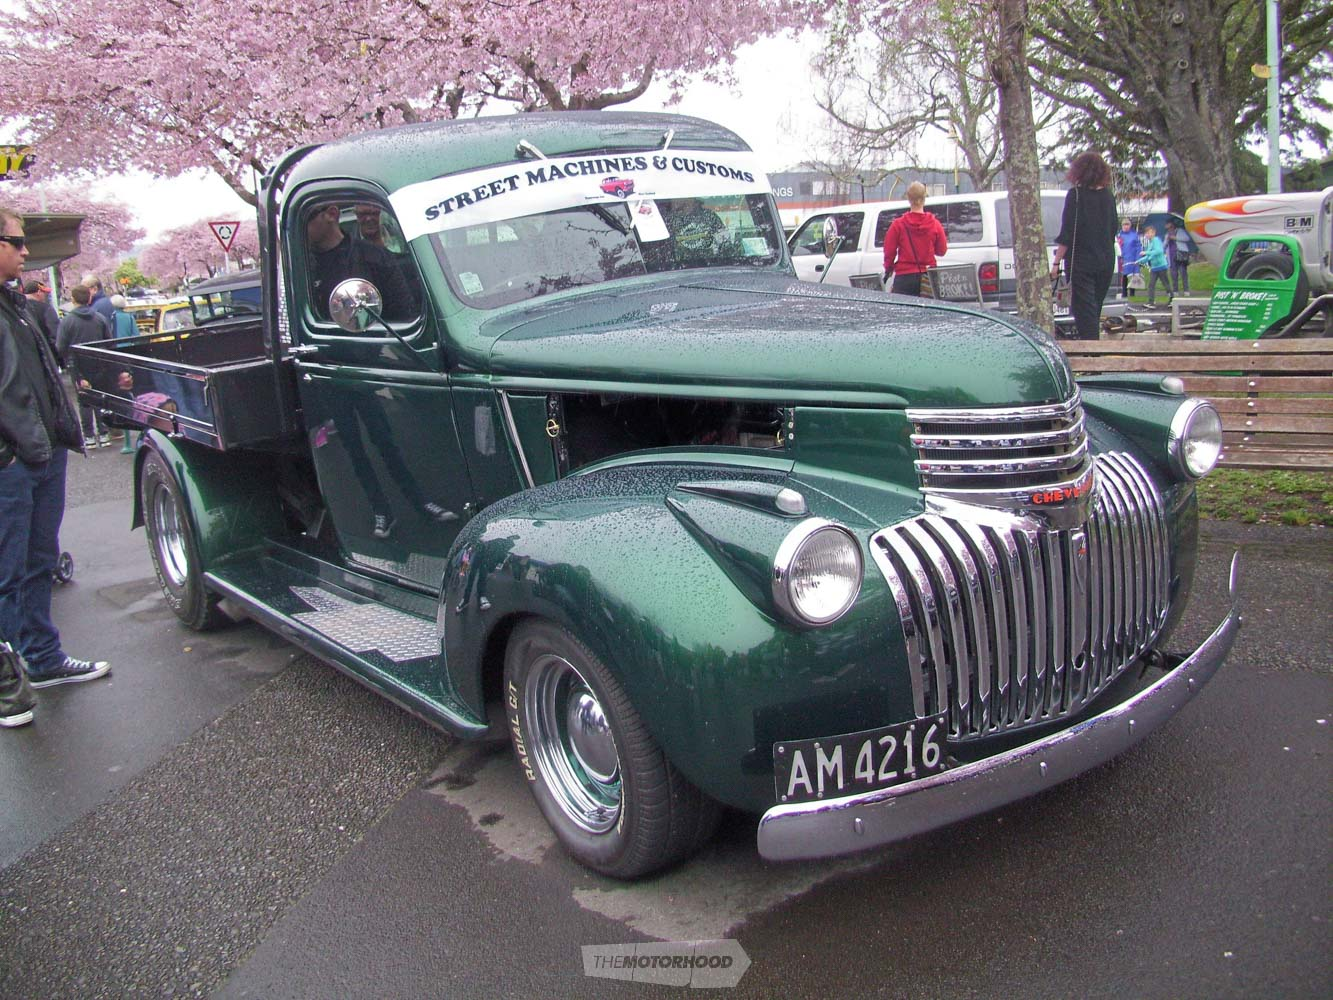 Colin Fitch from SM&Cs also had his 1946 Chev Thriftmaster pickup on display.It runs a 454 Chev V8 in it.jpg